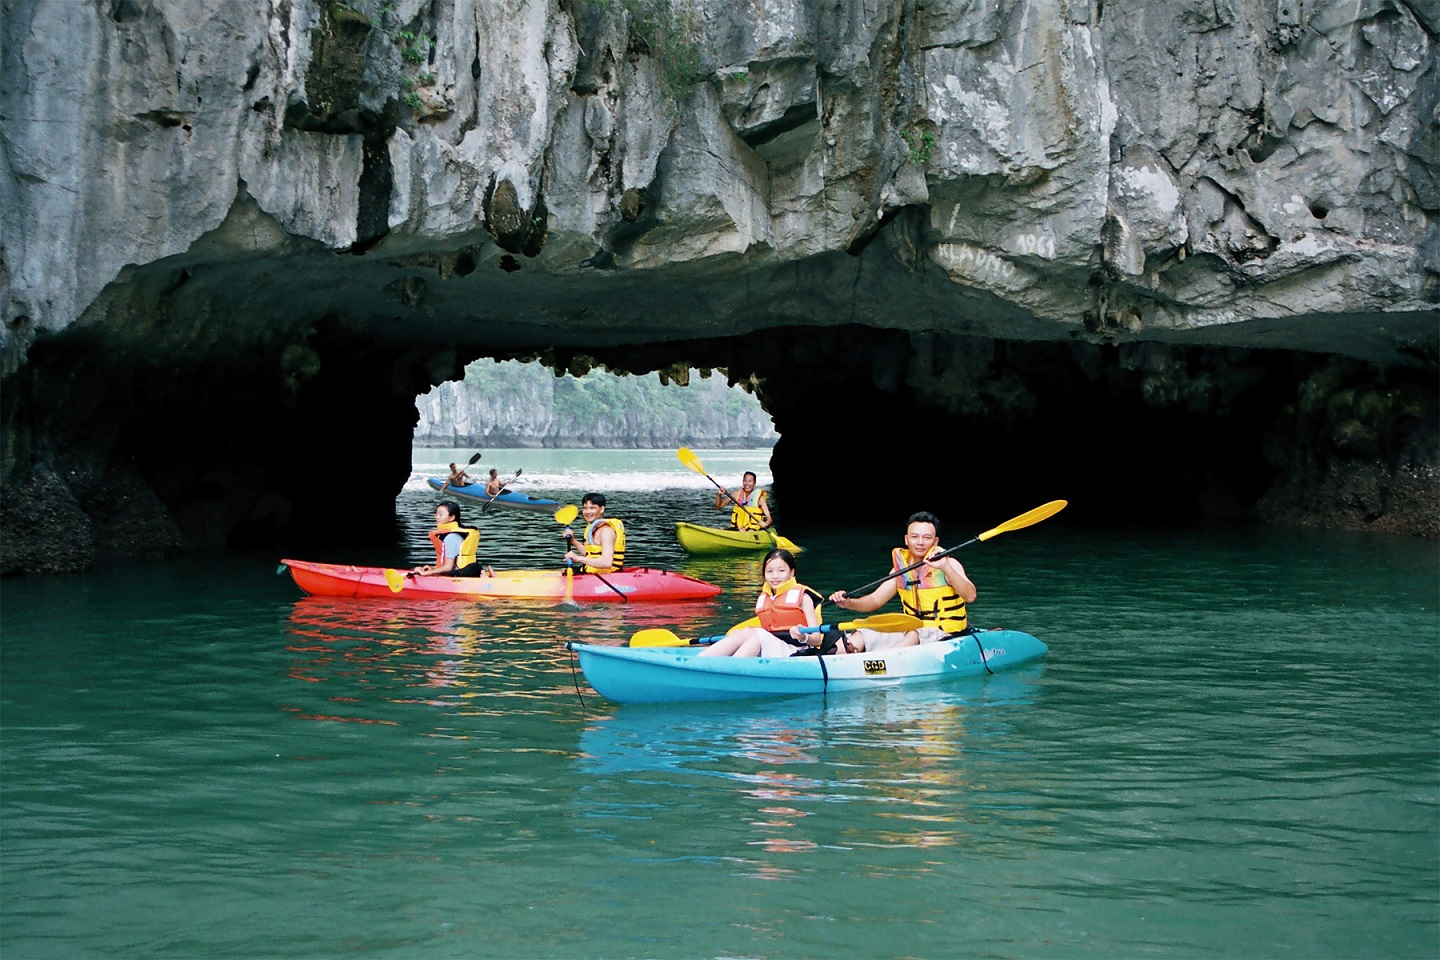 Halong bay is perfect for kayaking